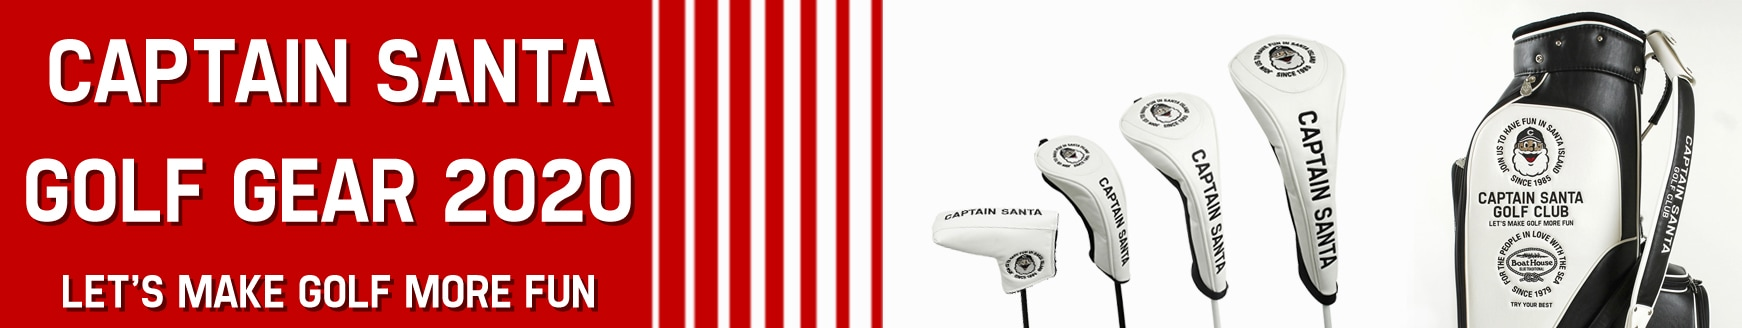 CAPTAIN SANTA GOLF GEAR